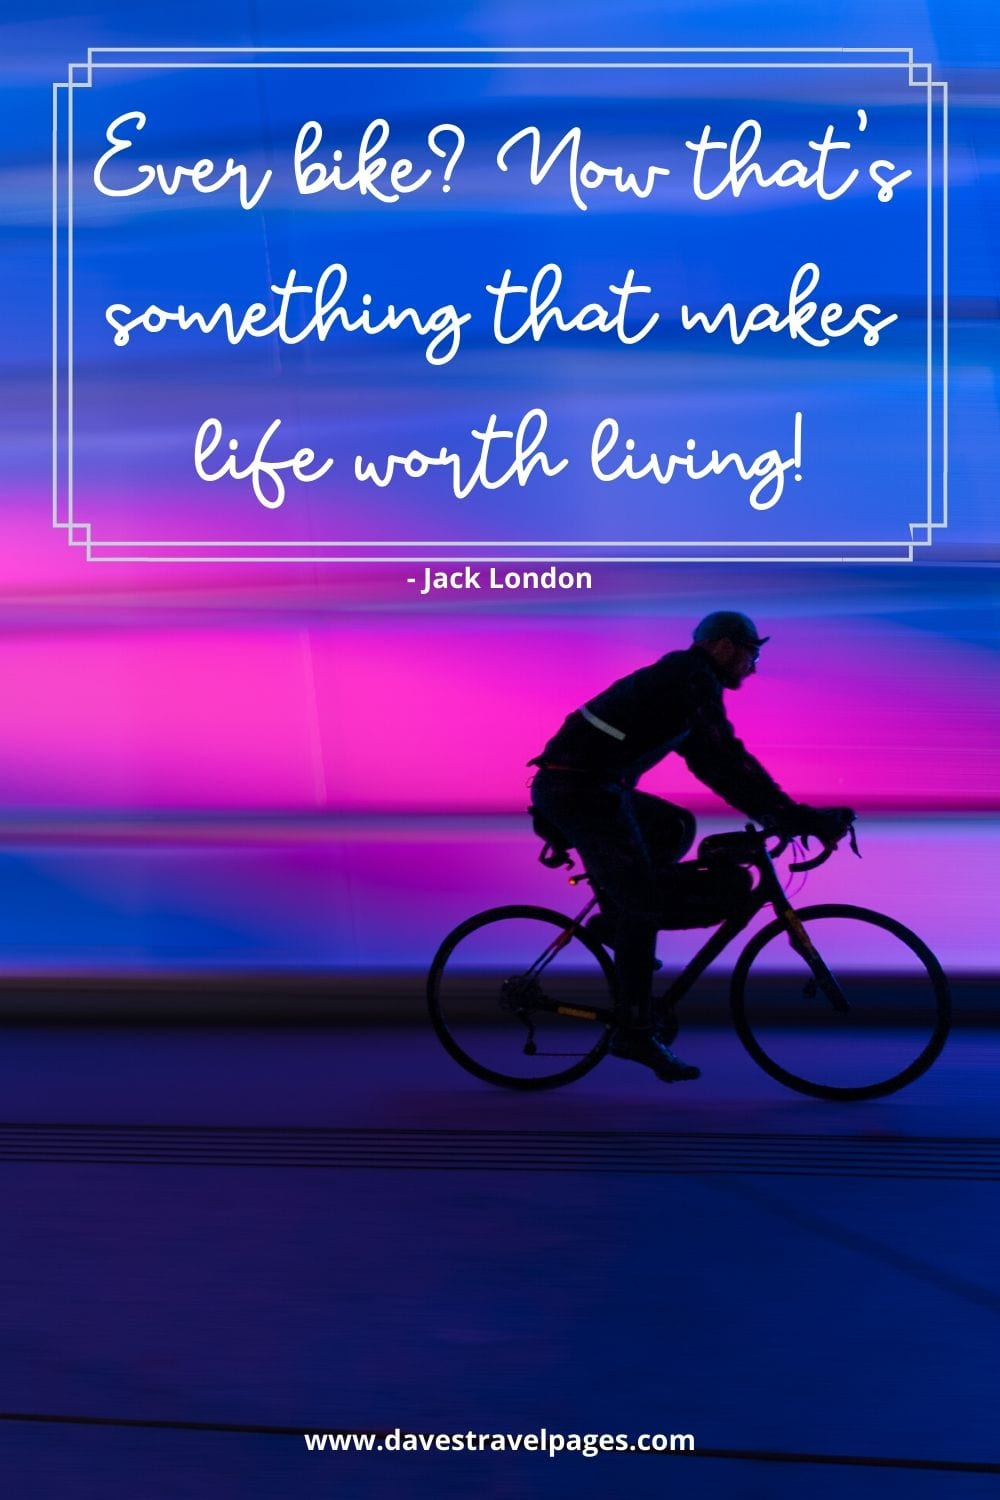 Ever bike? Now that's something that makes life worth living! - Jack London